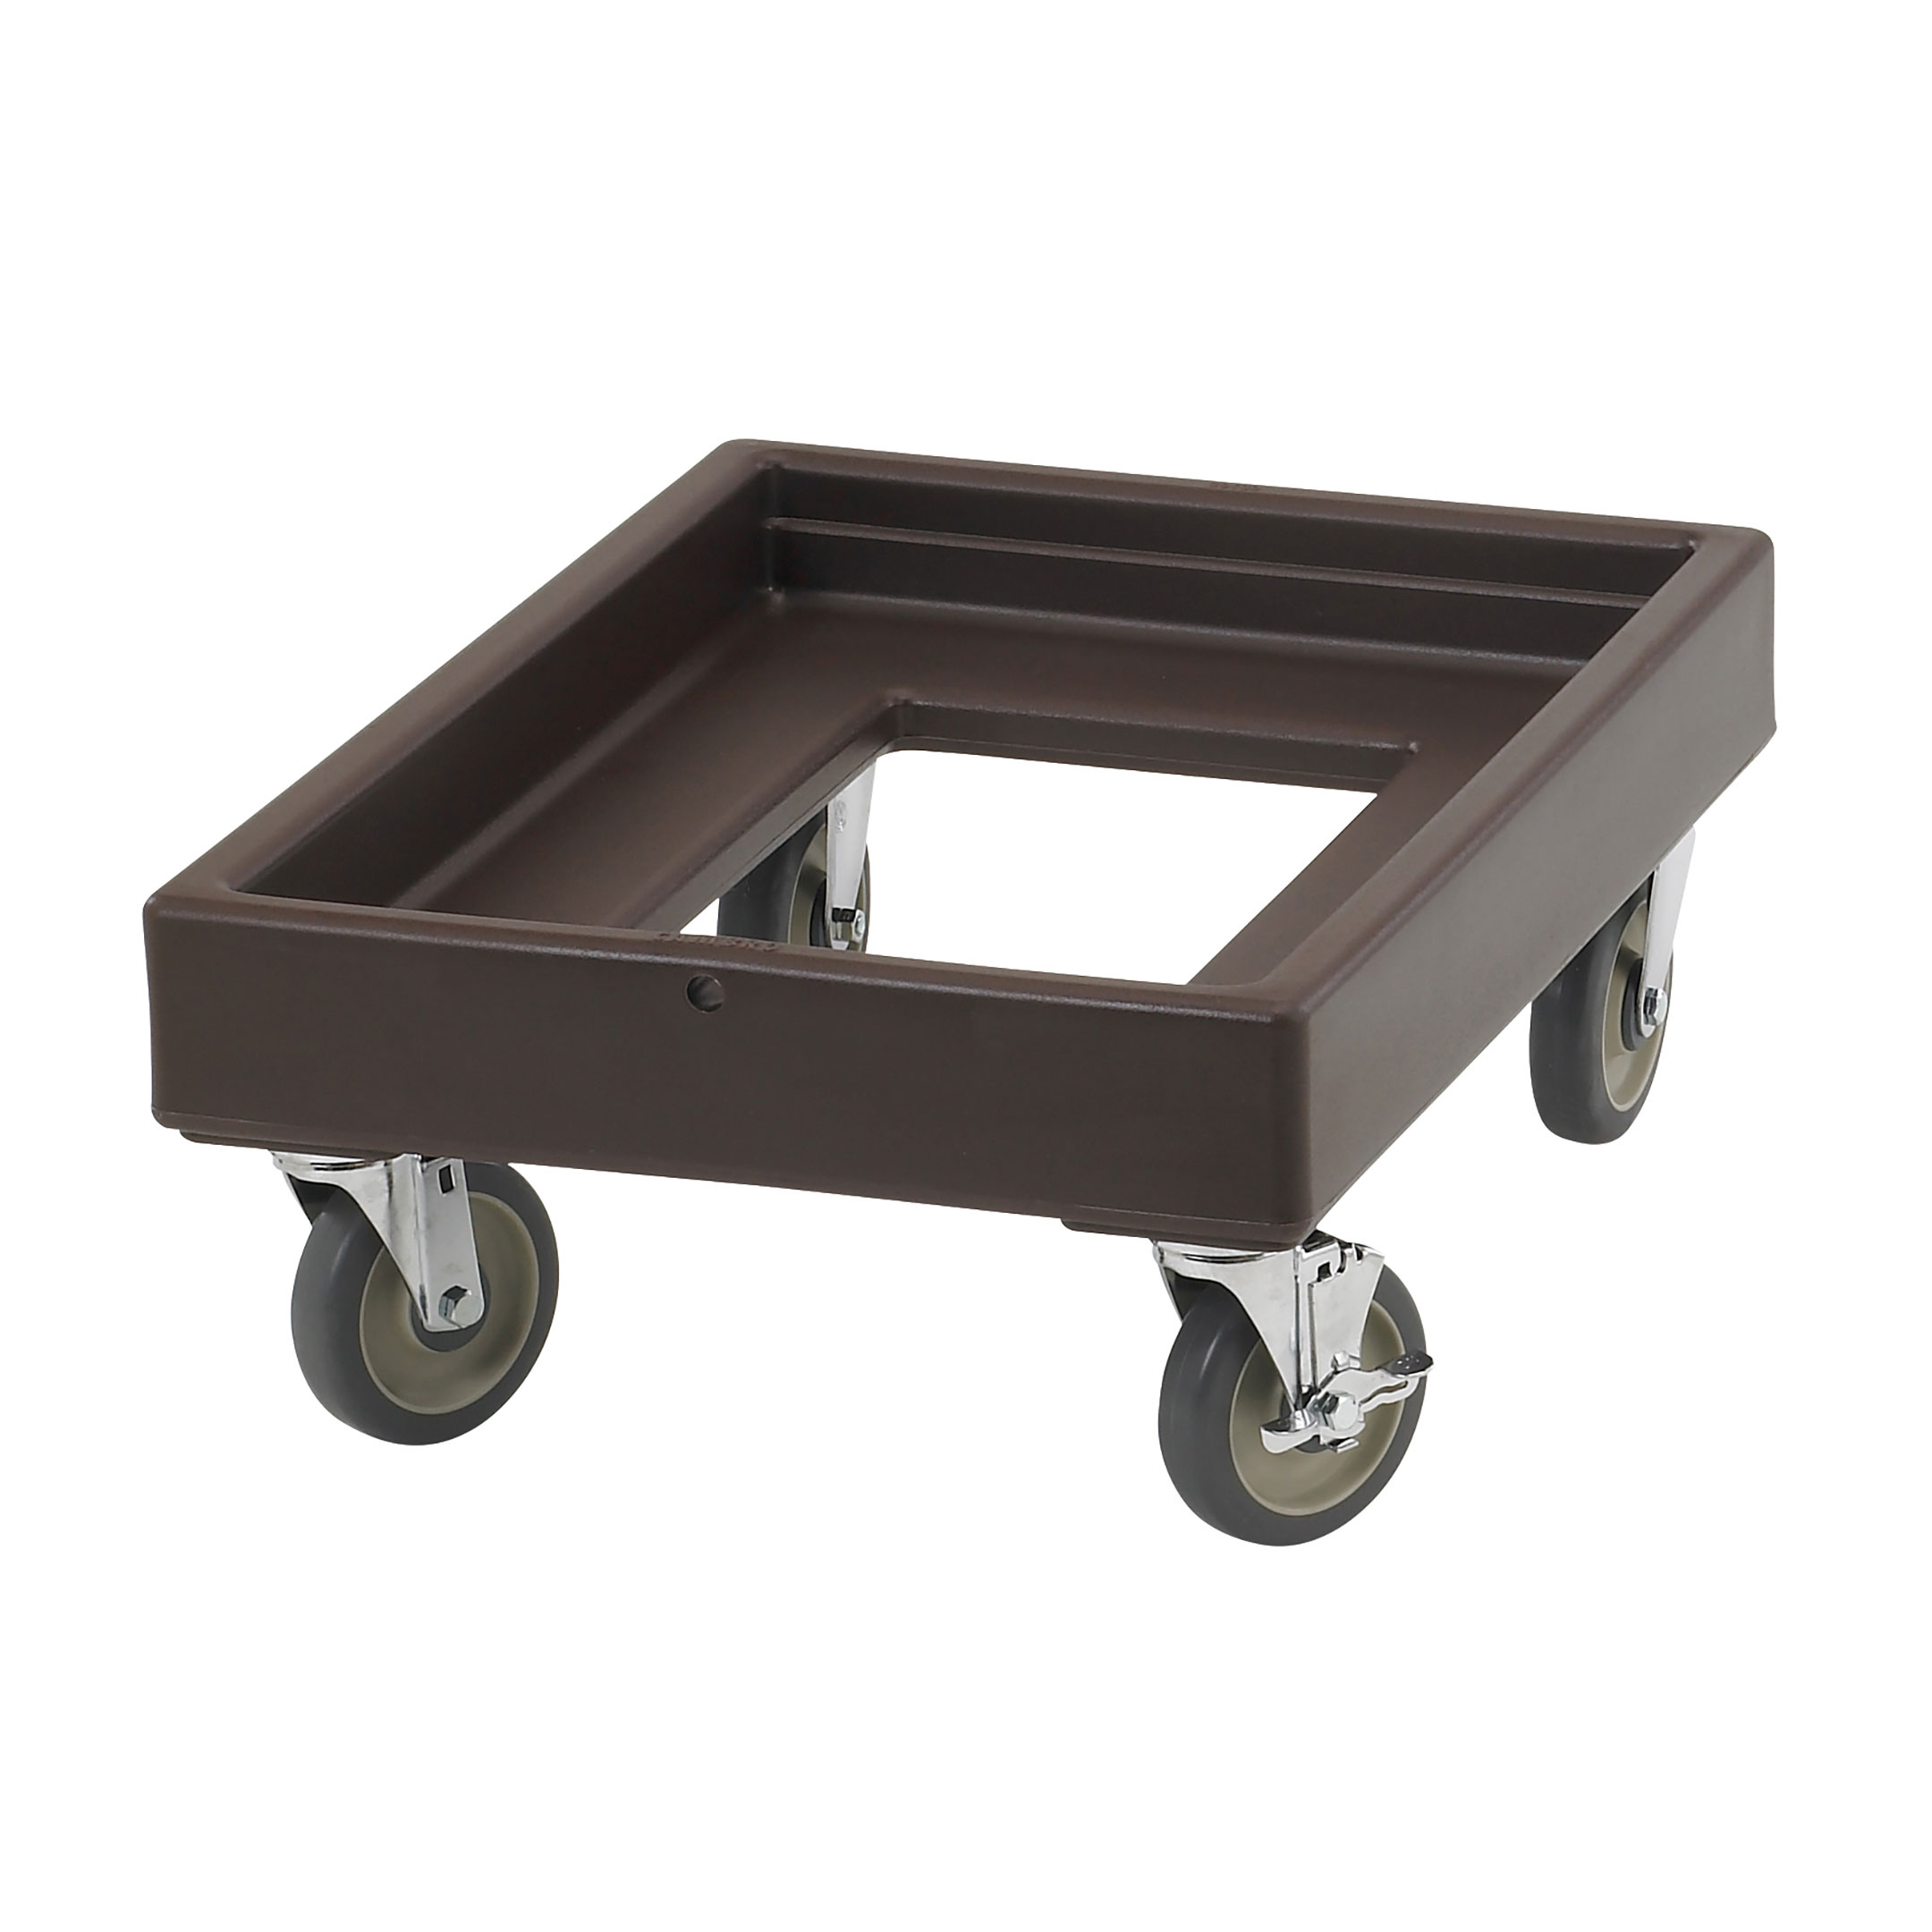 Cambro CD100131 food carrier dolly